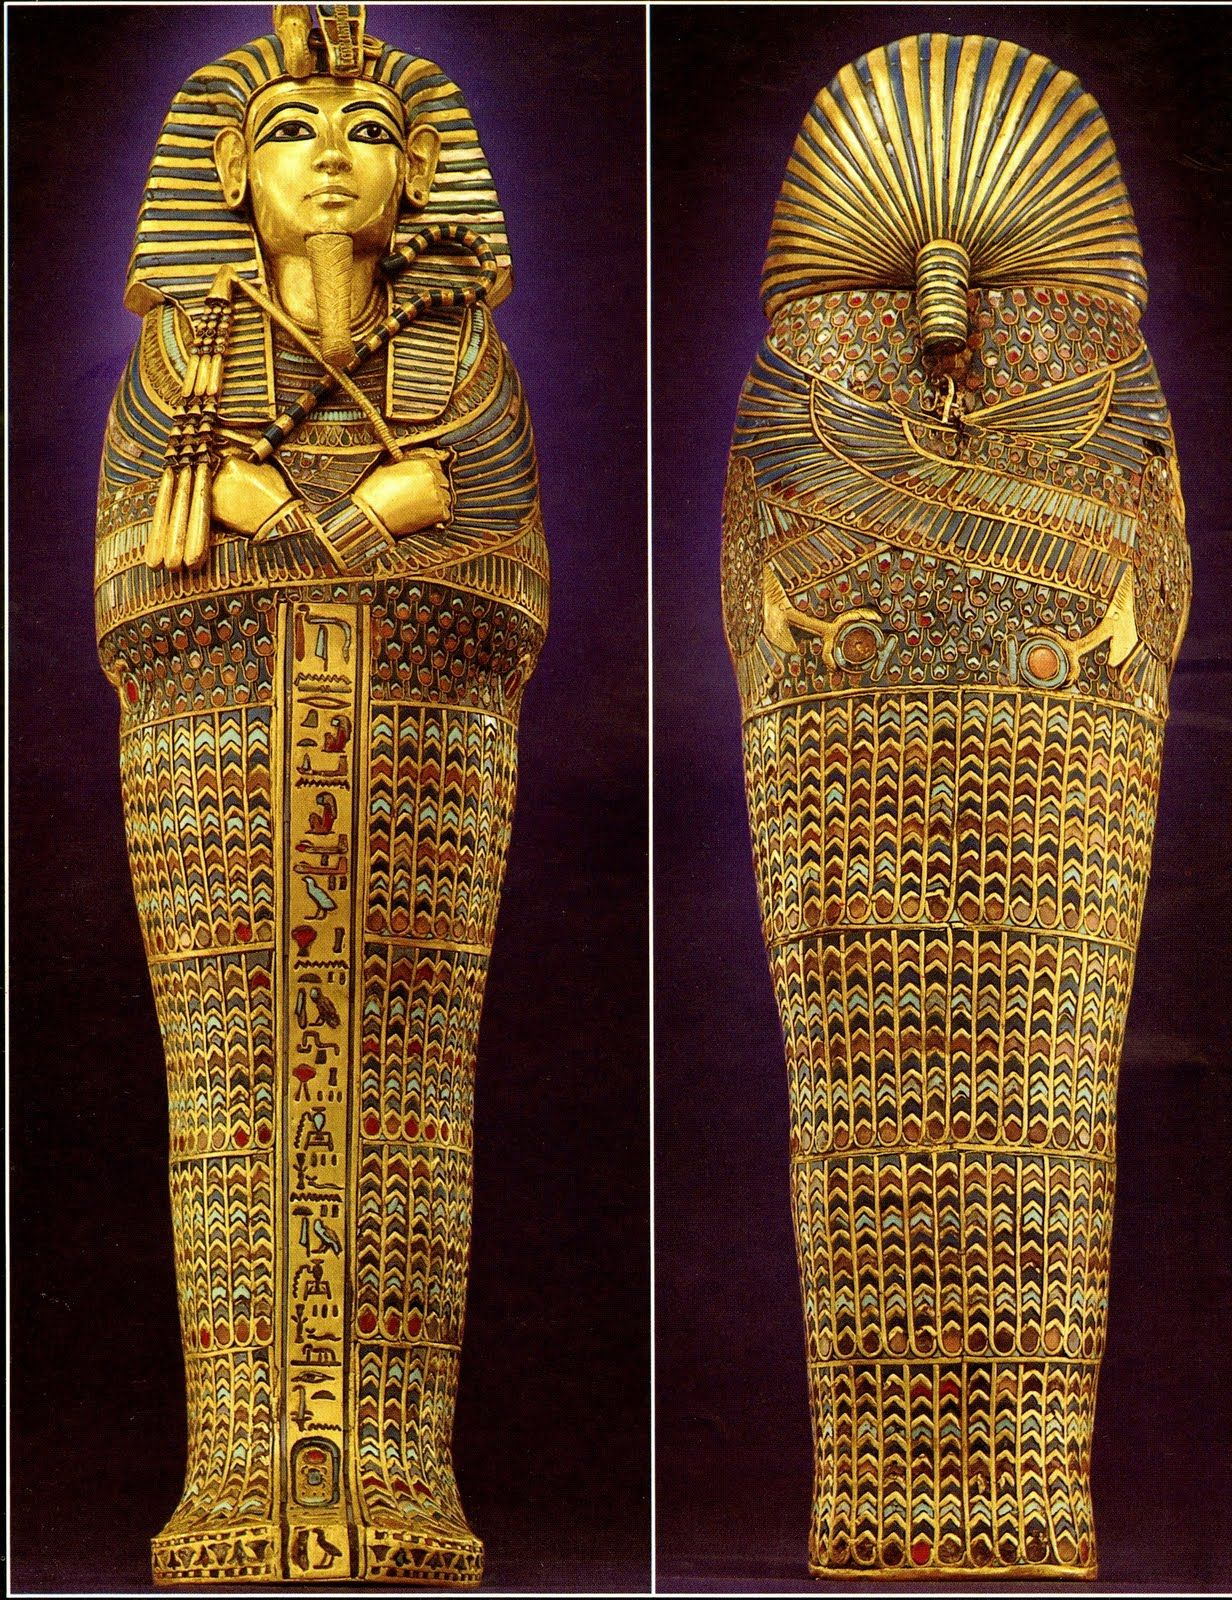 king tut sarcophagus cityzenart king tutankhamuns tomb and king tut sarcophagus cityzenart king tutankhamuns tomb and treasures